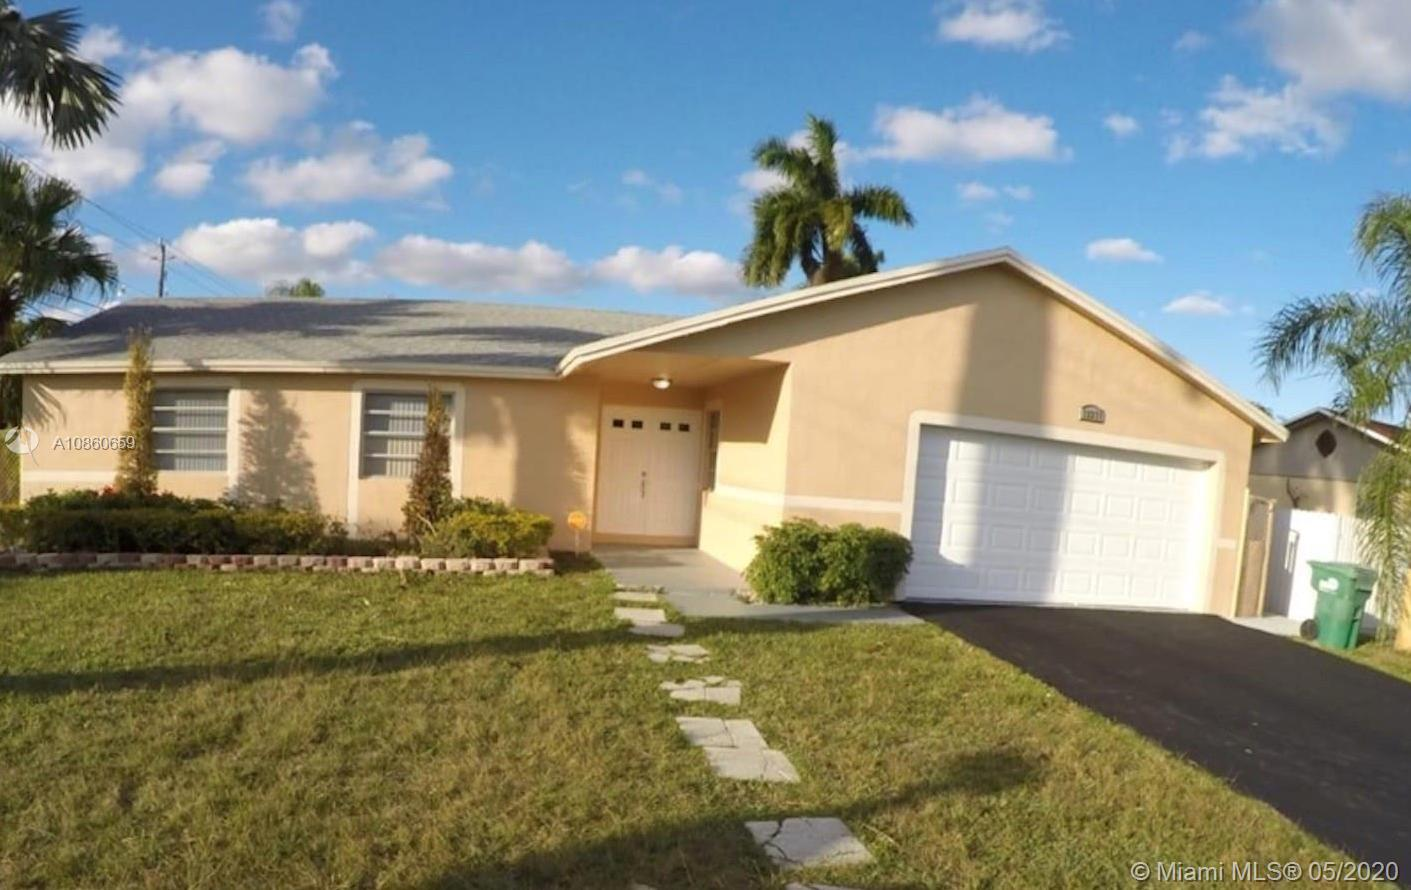 13371 SW 254 ter #0, Homestead, FL 33032 - Homestead, FL real estate listing